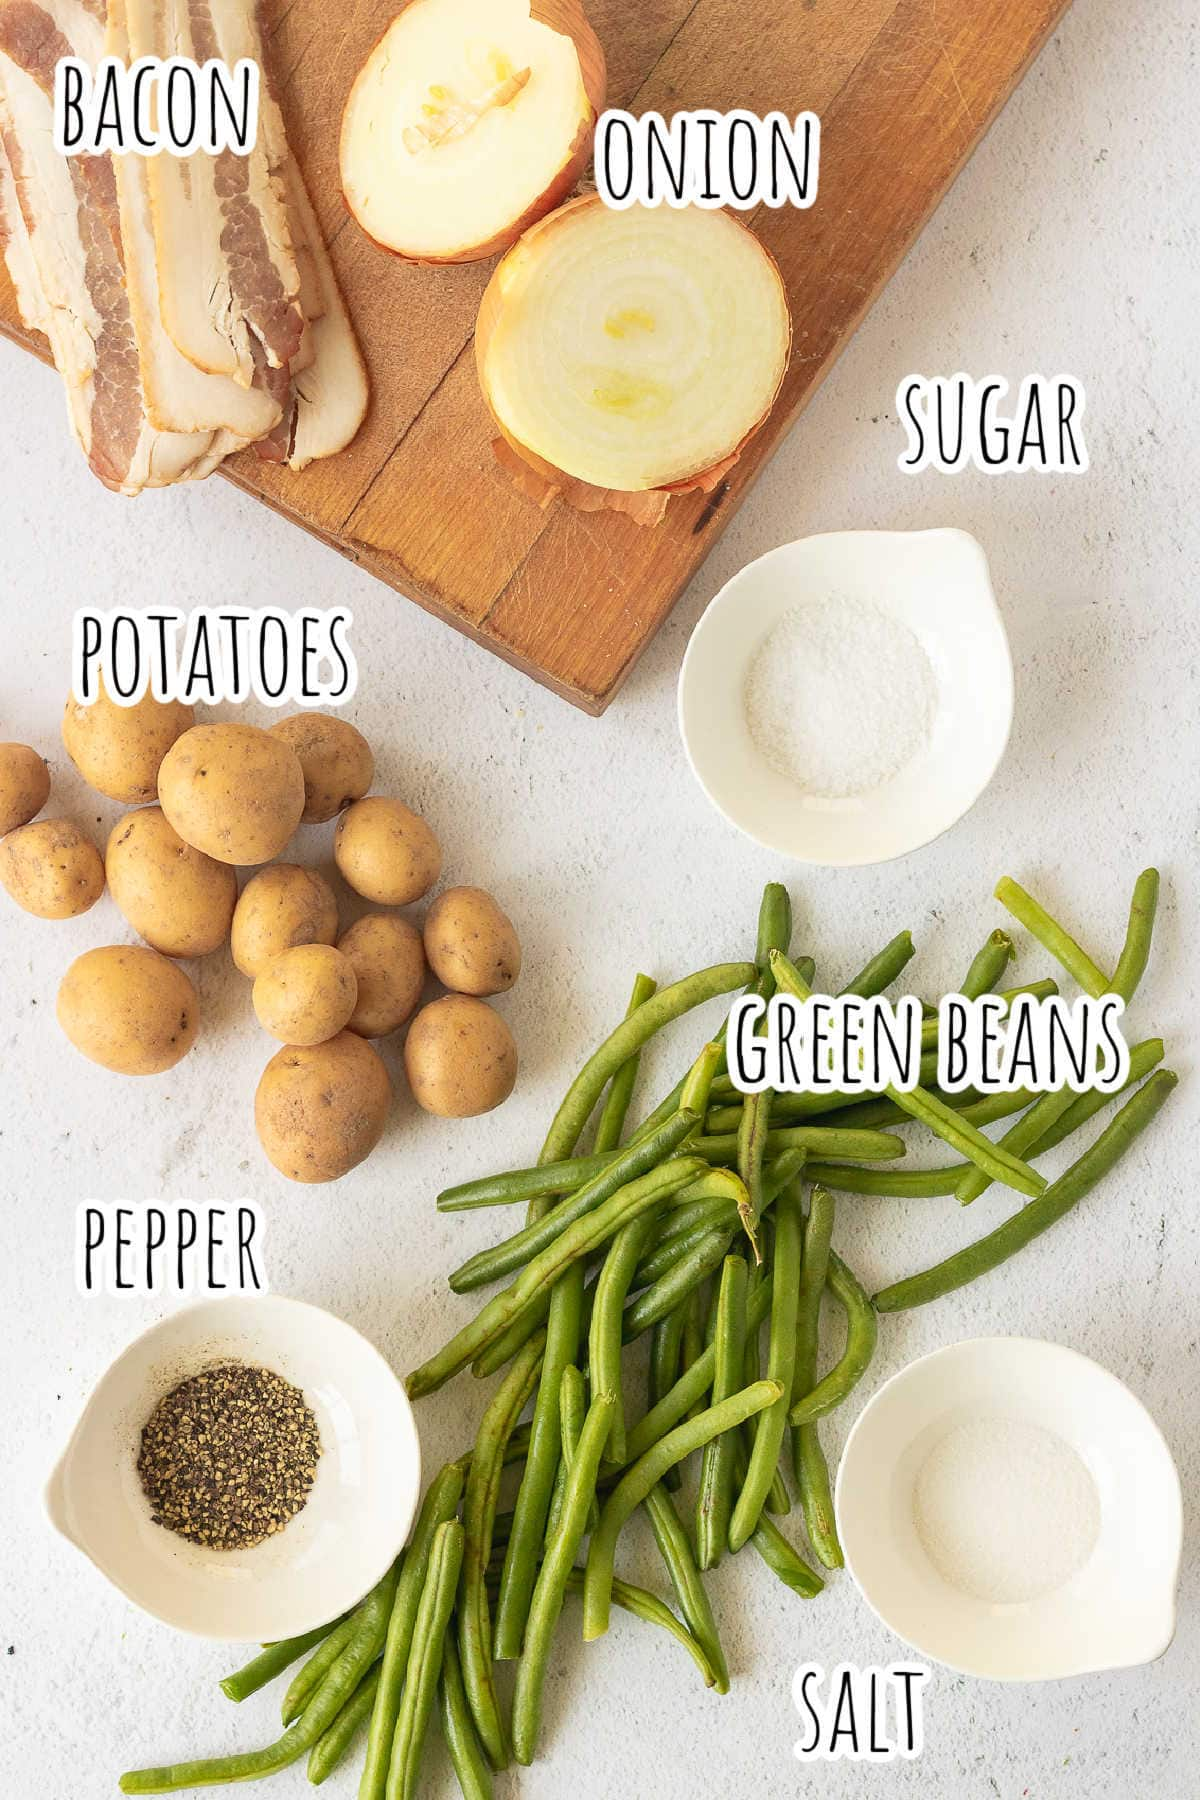 Labeled ingredients for green beans and potatoes recipe.